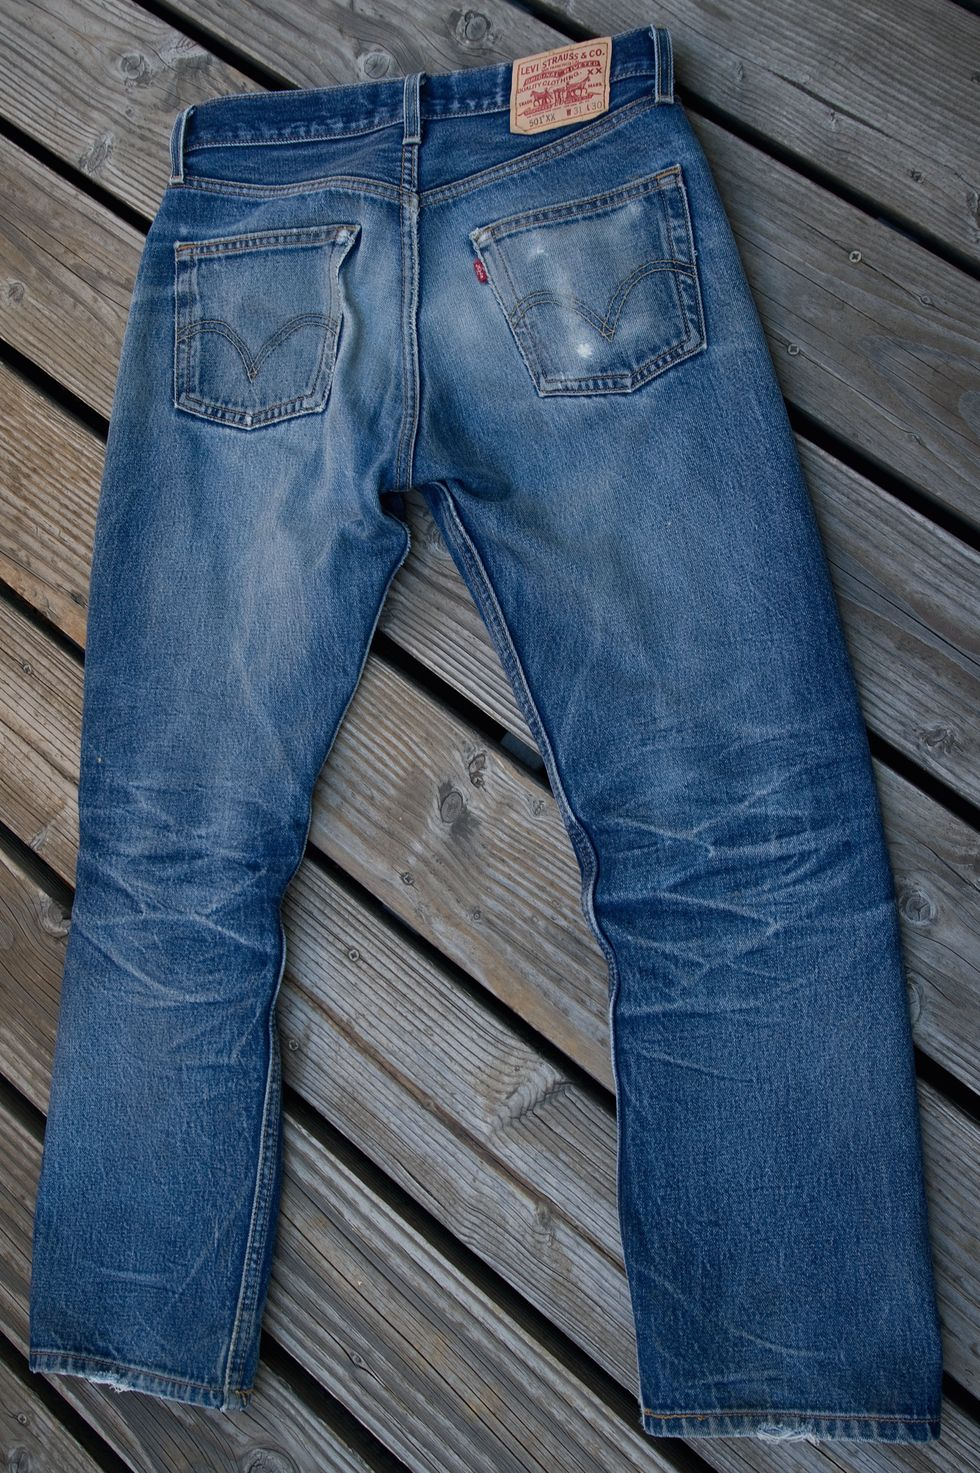 To My Ruined Favorite Pair of Jeans